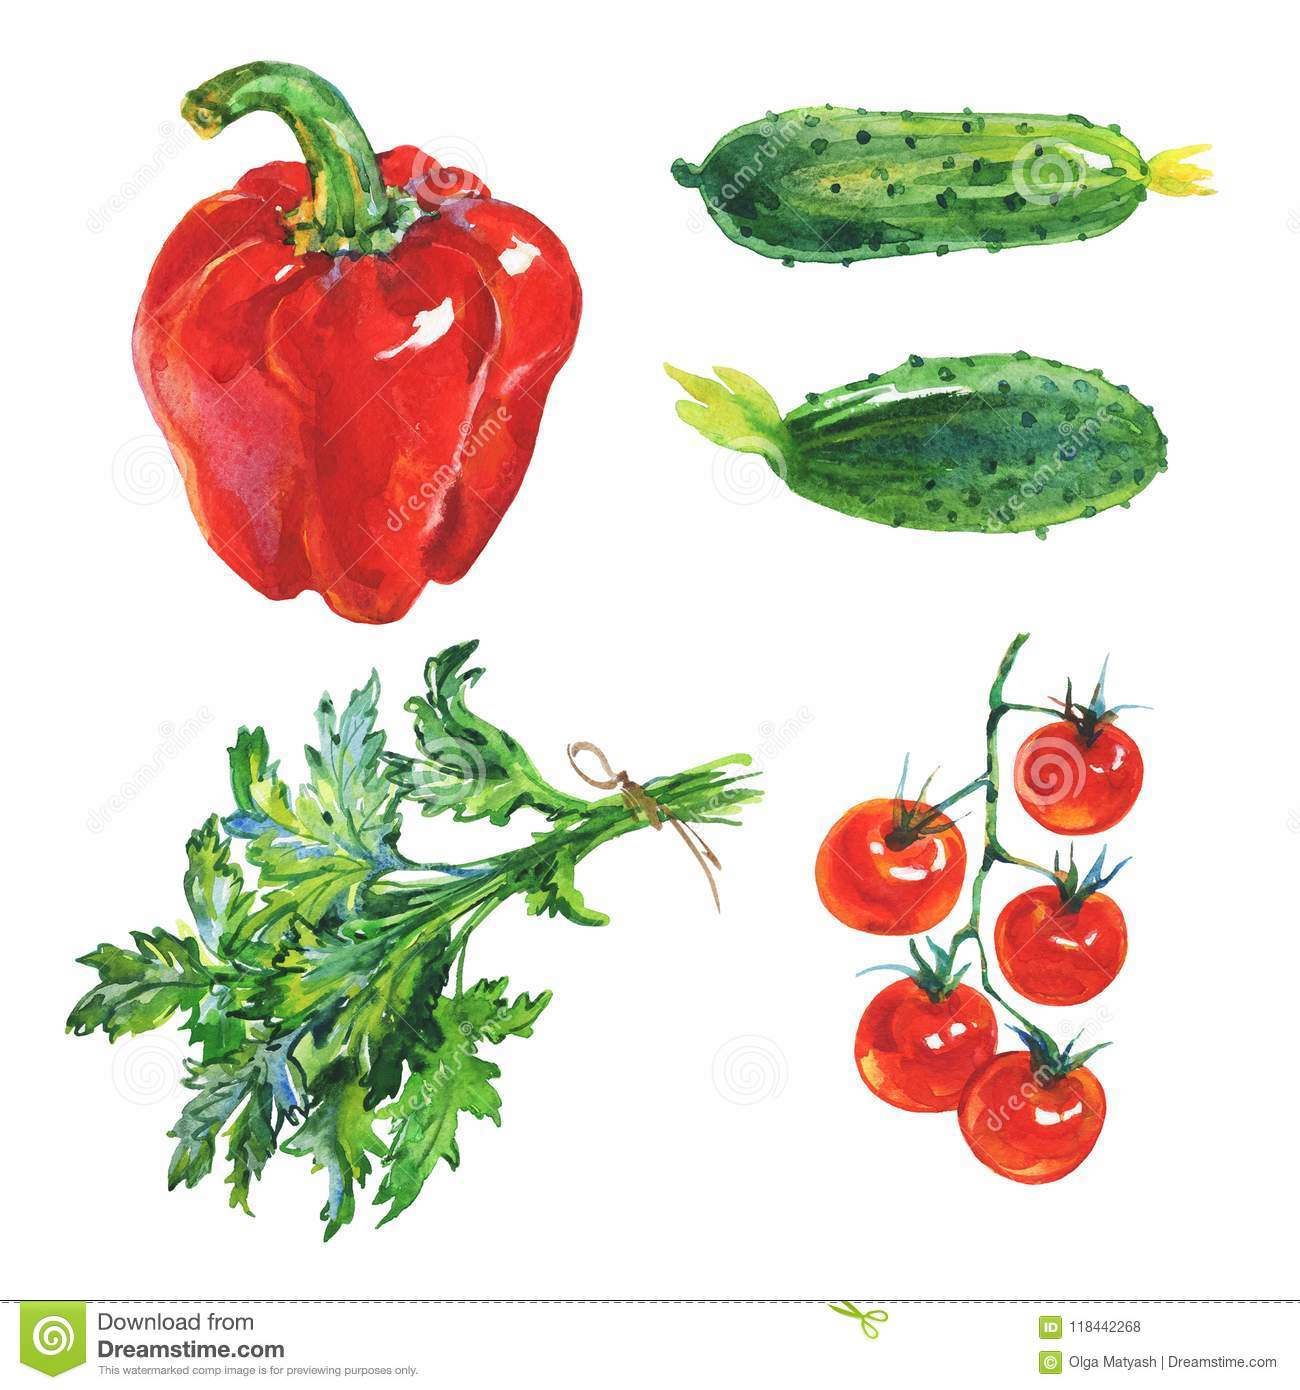 Watercolor paprika, cucumbers, parsley, tomatoes